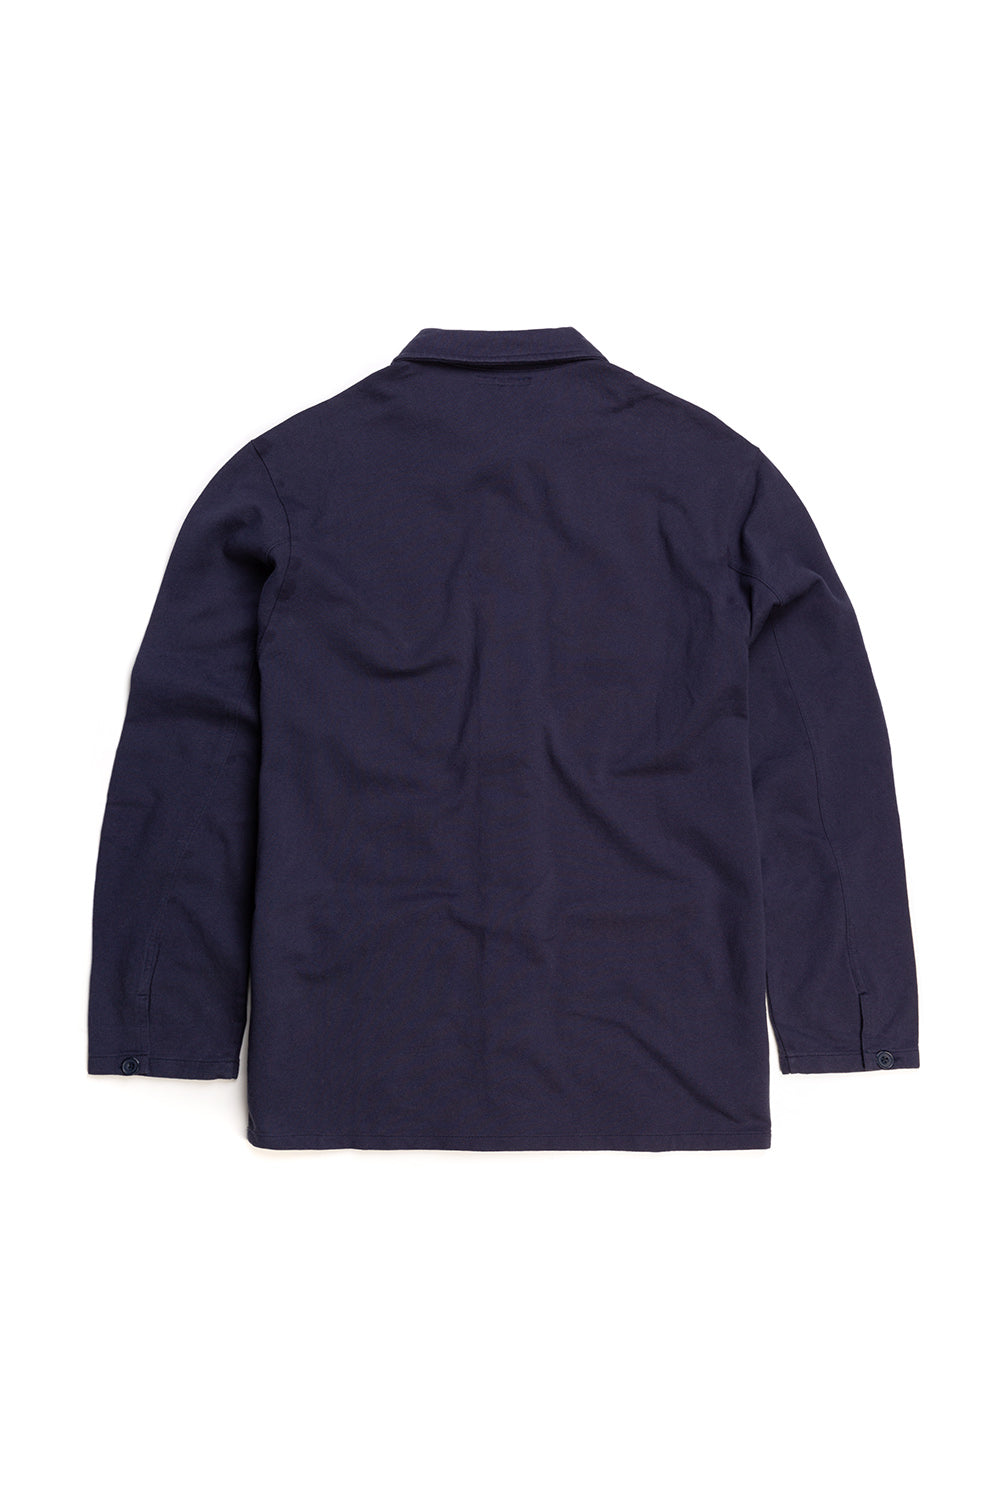 The Navy Four Pocket Military Jacket